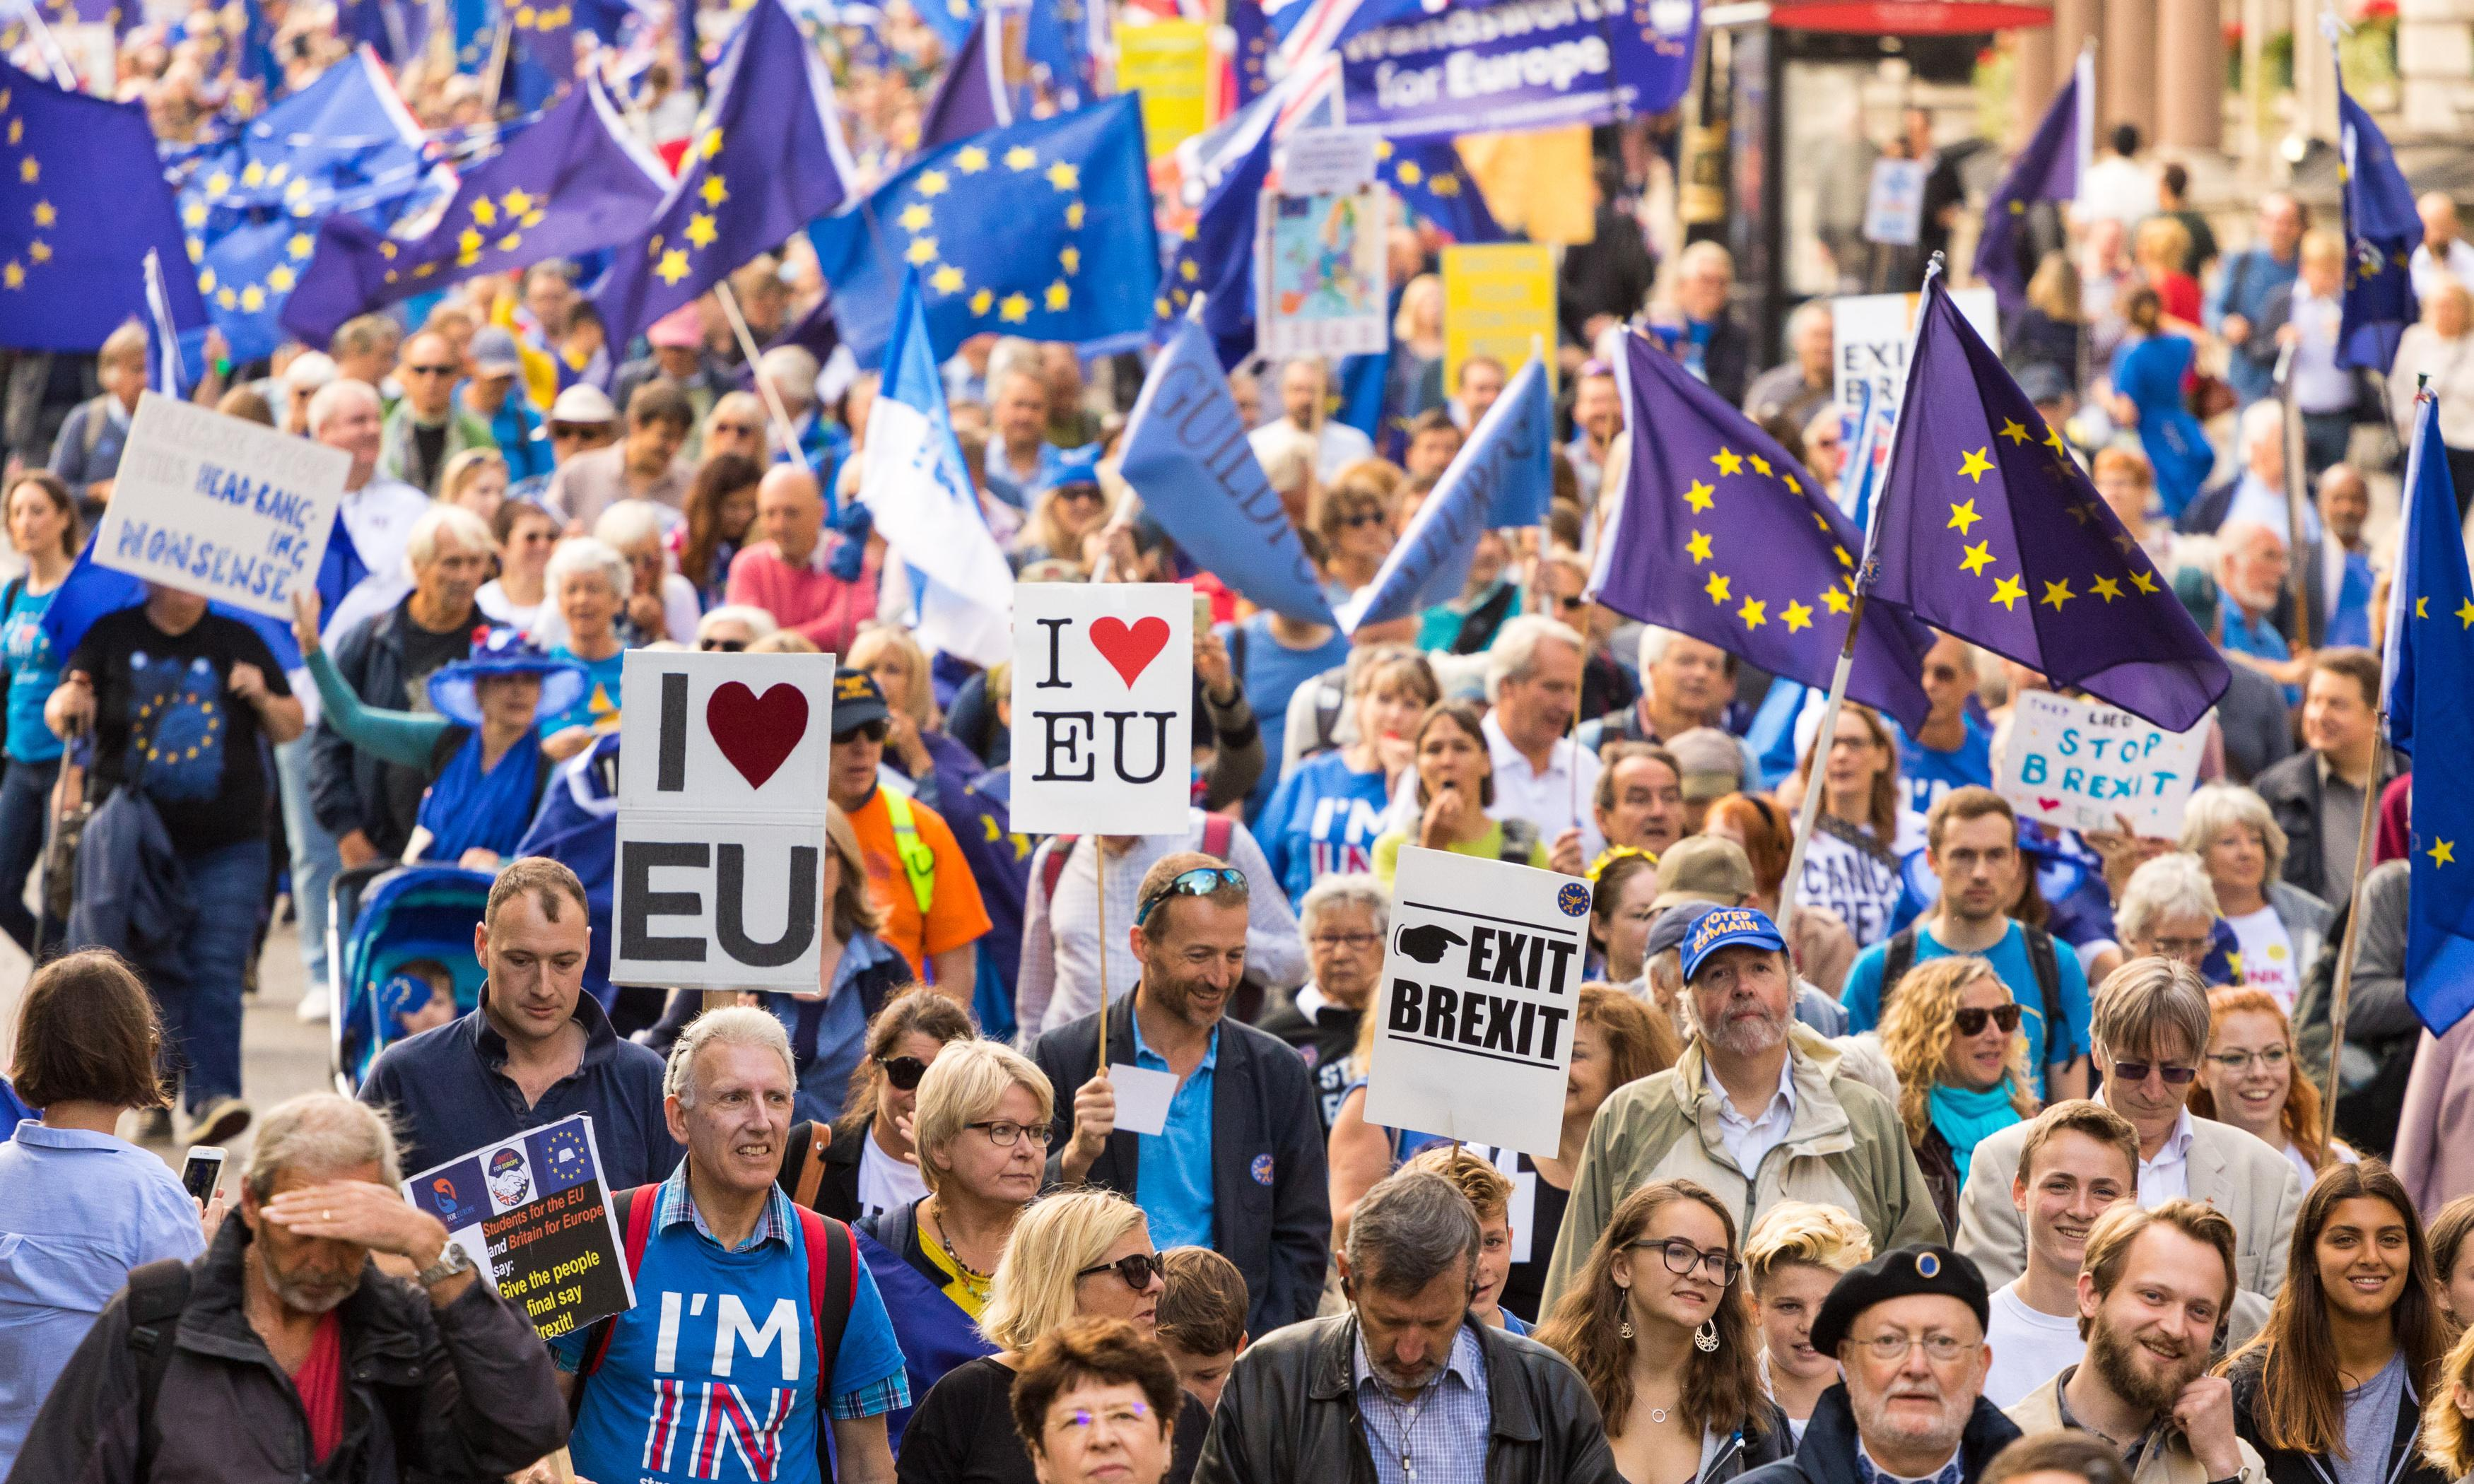 The Guardian view on the People's Vote march: a force for good